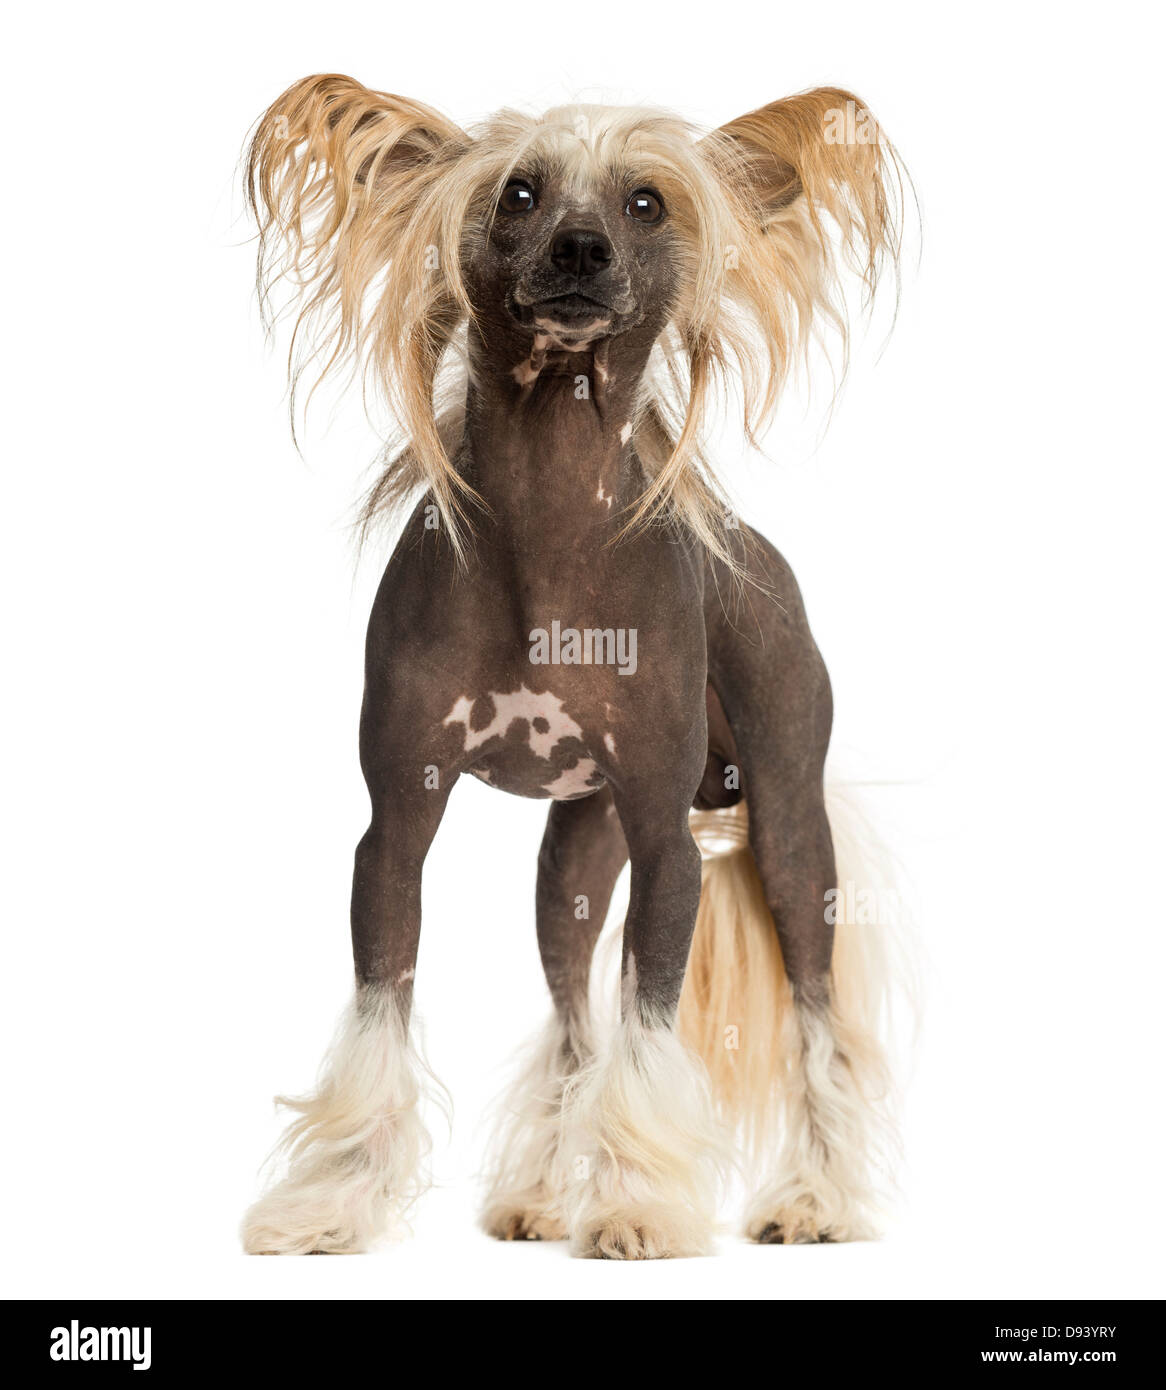 Chinese Crested Dog, 3 years old, standing against white background - Stock Image